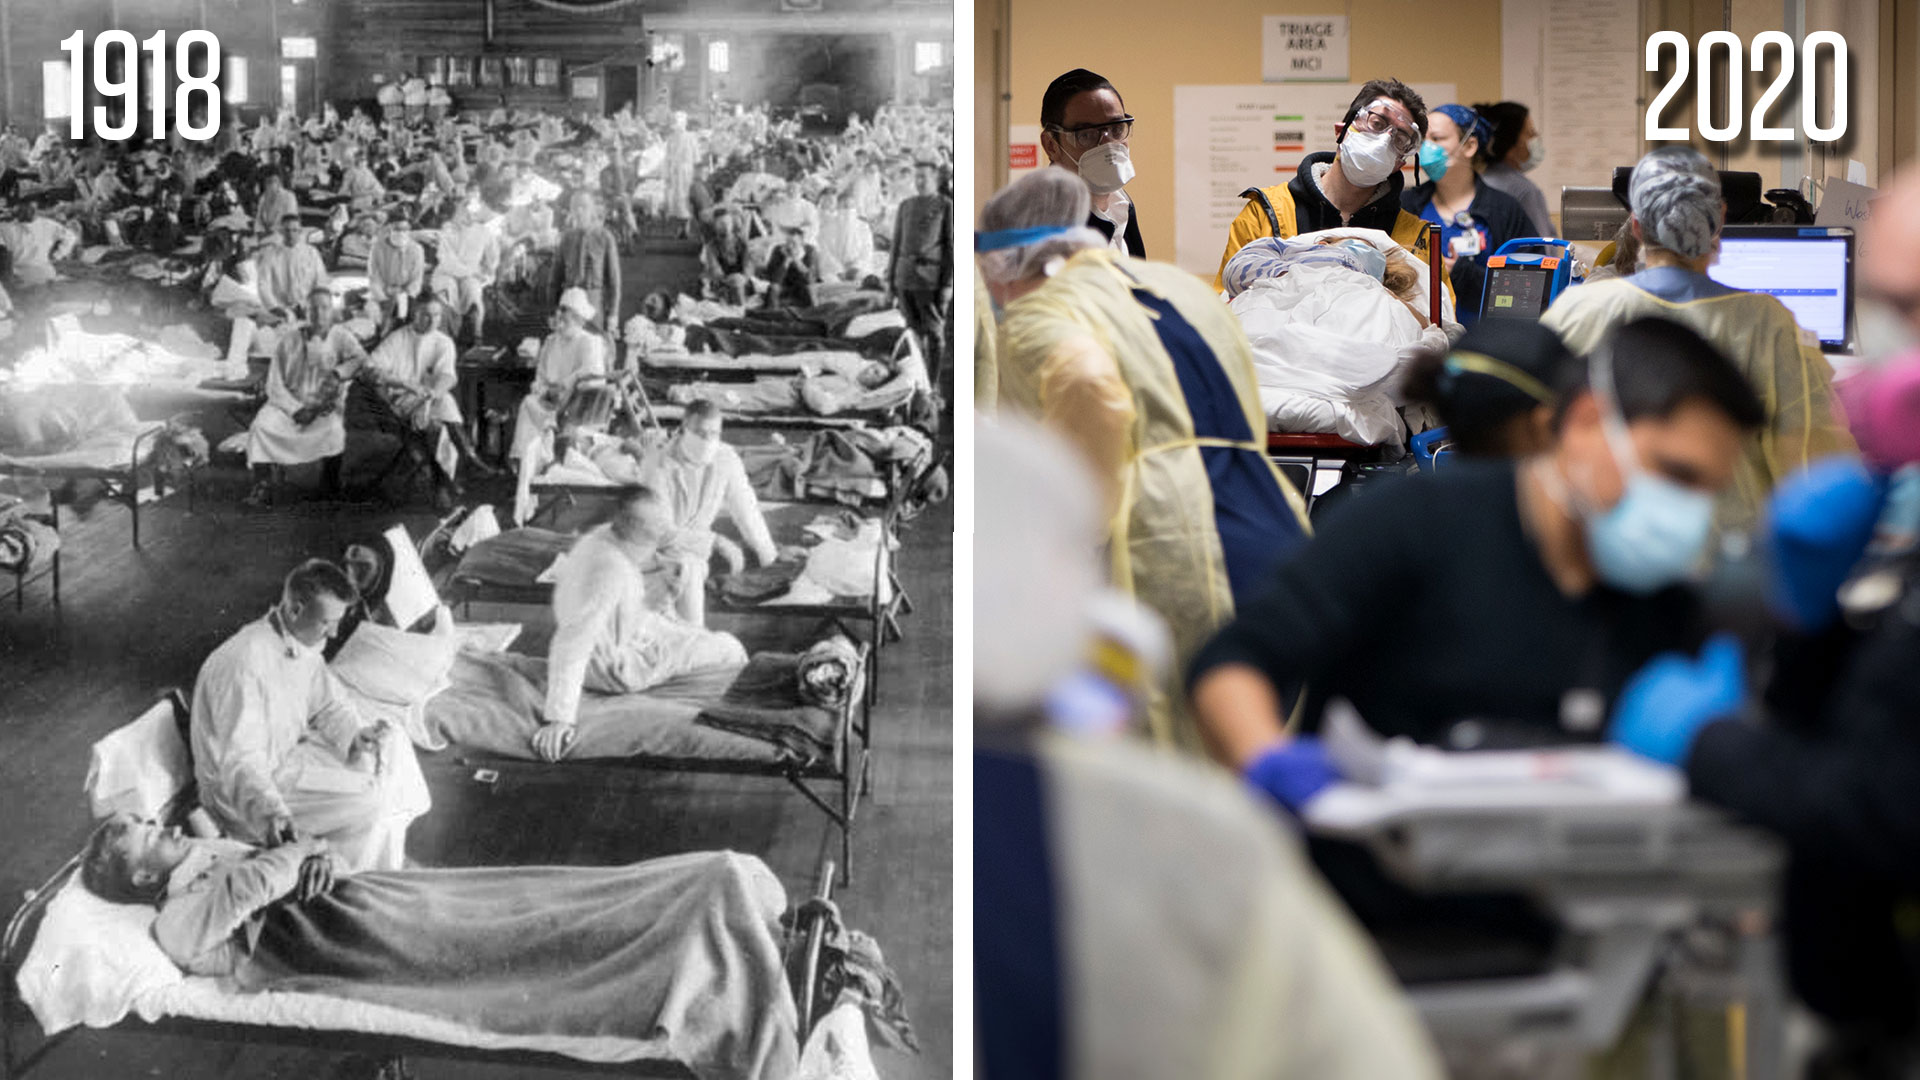 Flu patients convalesce in a makeshift Kansas hospital (left), while emergency medical personnel scurried to provide care as coronavirus victims overflow into a hallway in a New York hospital in April. A University of Maryland public health researcher says the two pandemics bear many similarities, from the public health responses to unequal racial outcomes of the illnesses.(1918 photo by Associated Press; 2020 photo by Jeffrey Basinger/Newsday via Getty Images)